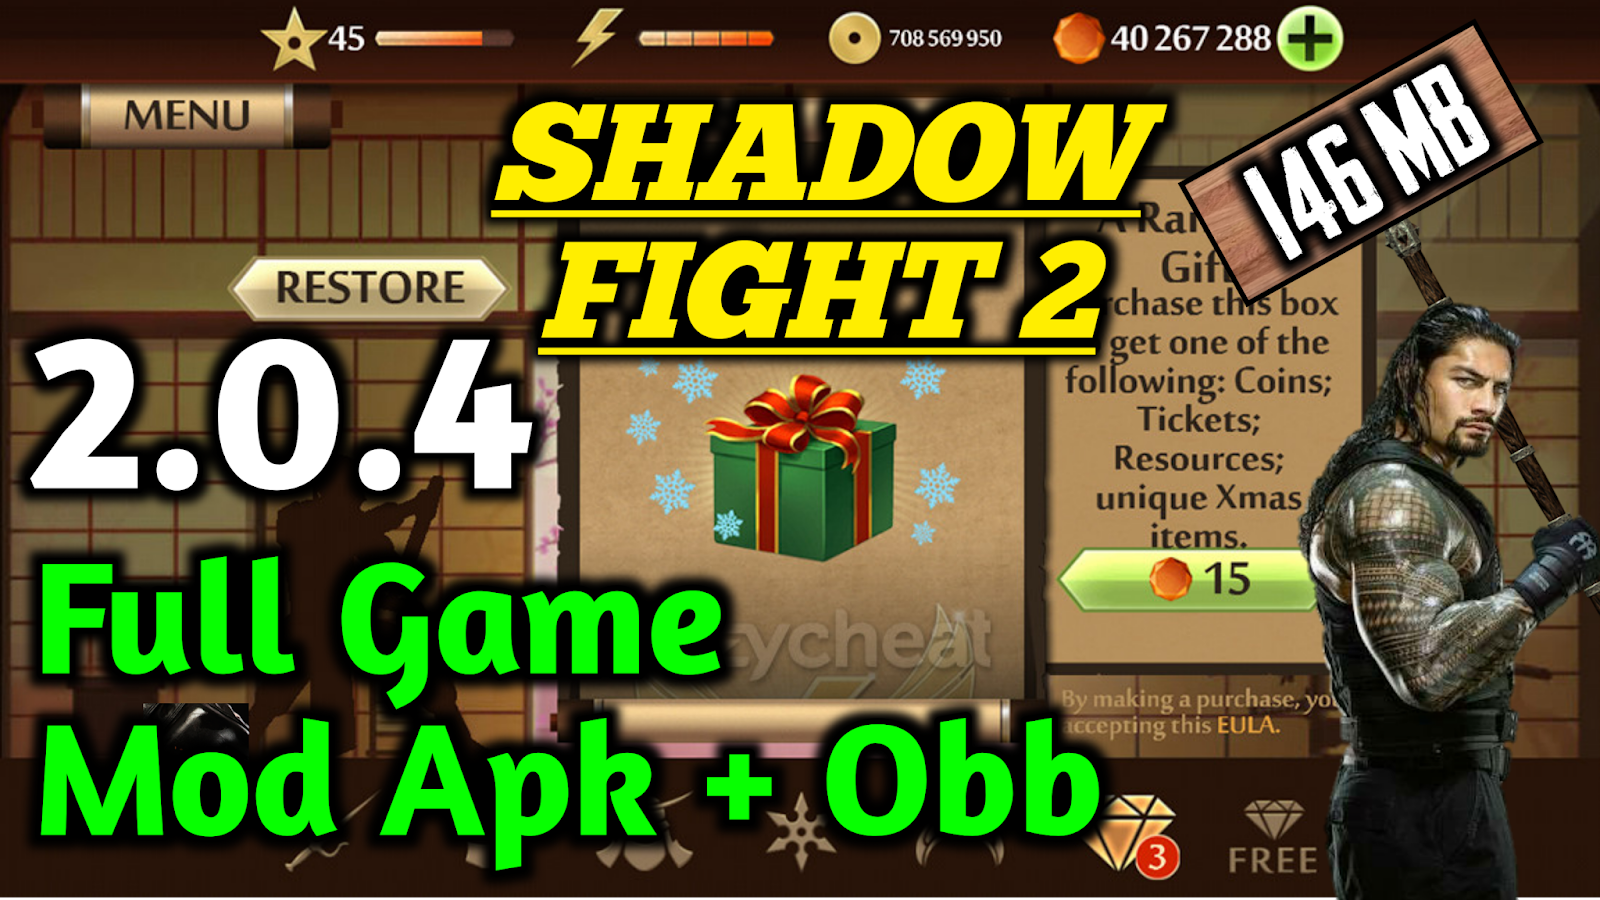 Shadow Fight 2   2 0 4 Mod Apk+Obb   Full Game   Unlimited